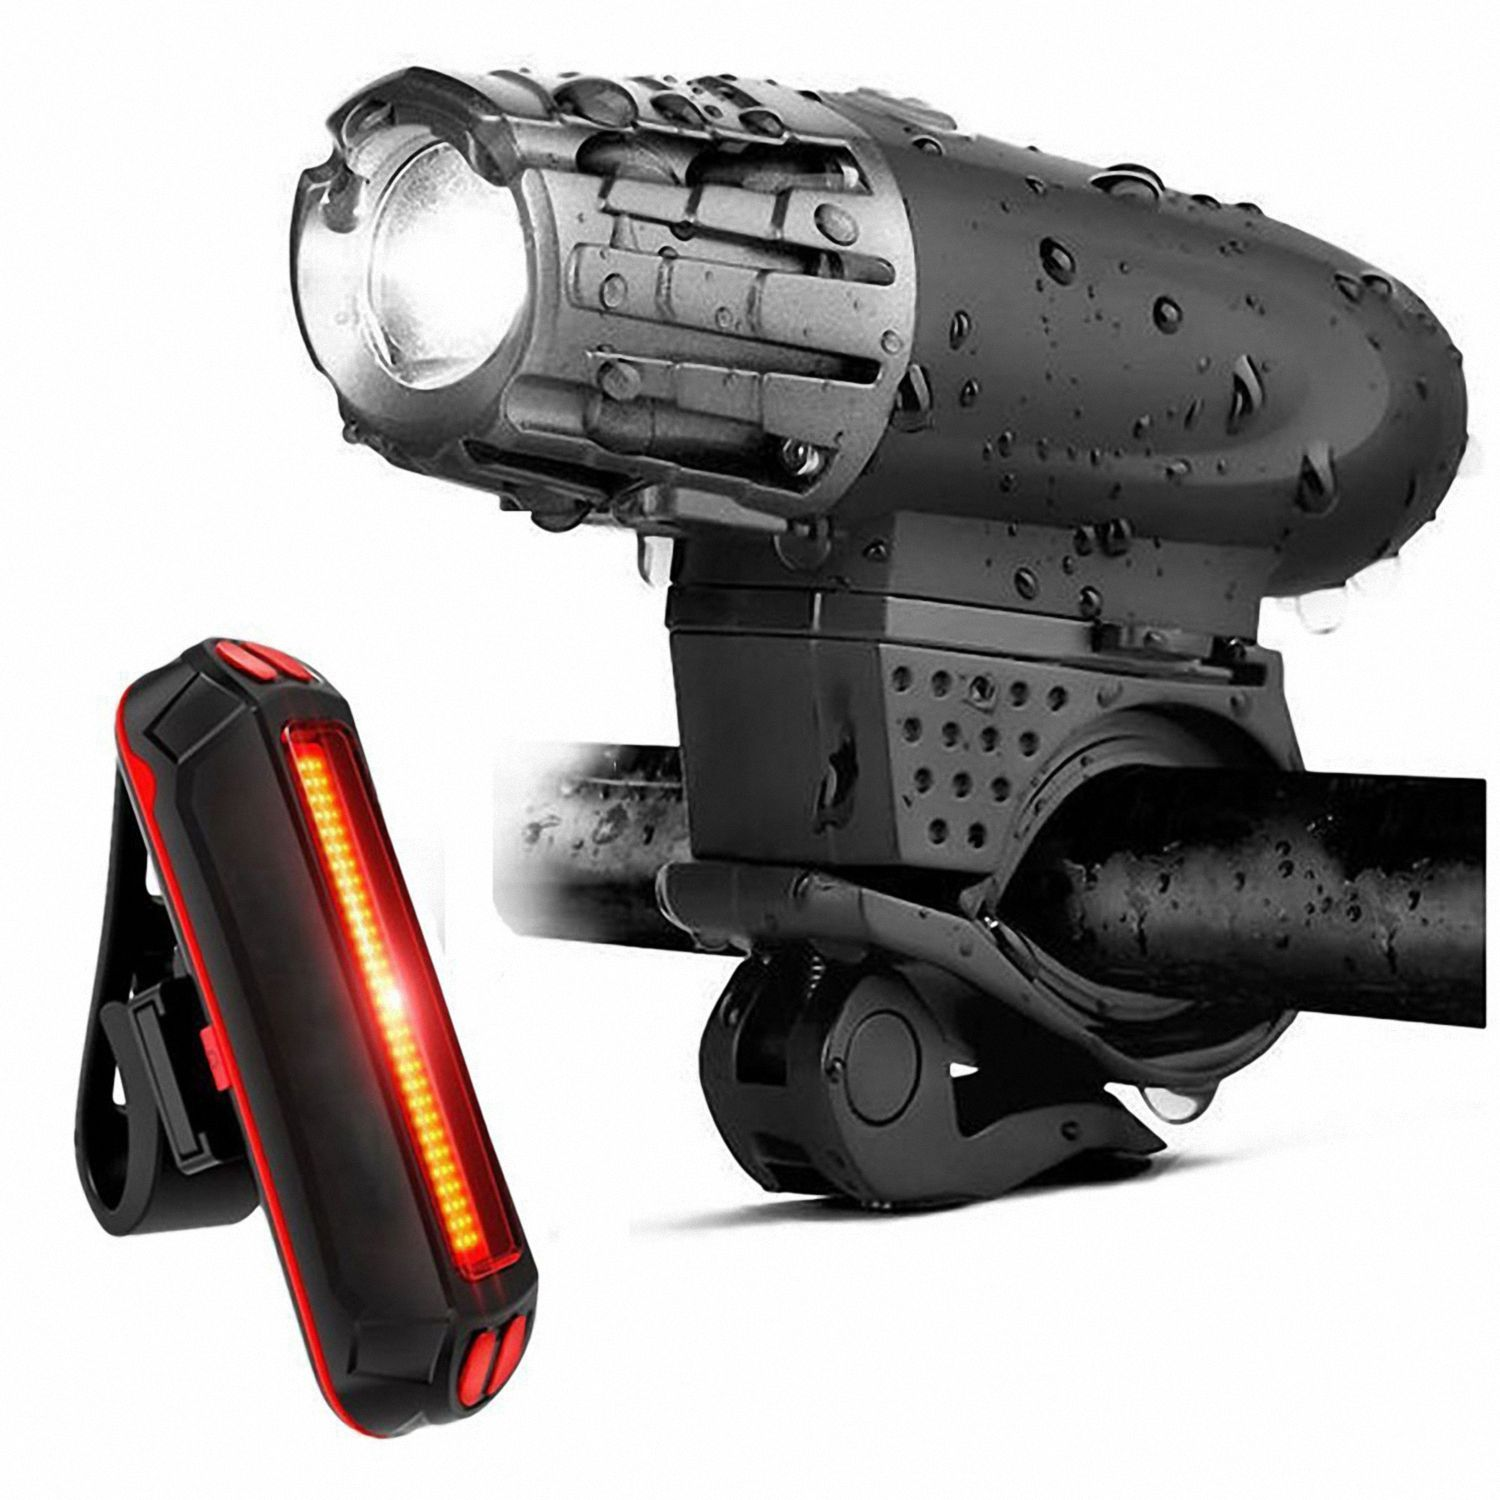 FSTE-<font><b>Bike</b></font> <font><b>Lights</b></font> Bicycle <font><b>Lights</b></font> Front and Back <font><b>USB</b></font> Rechargeable <font><b>Bike</b></font> <font><b>Light</b></font> <font><b>Set</b></font> Super Bright Front and Rear Flashlight LED Head image